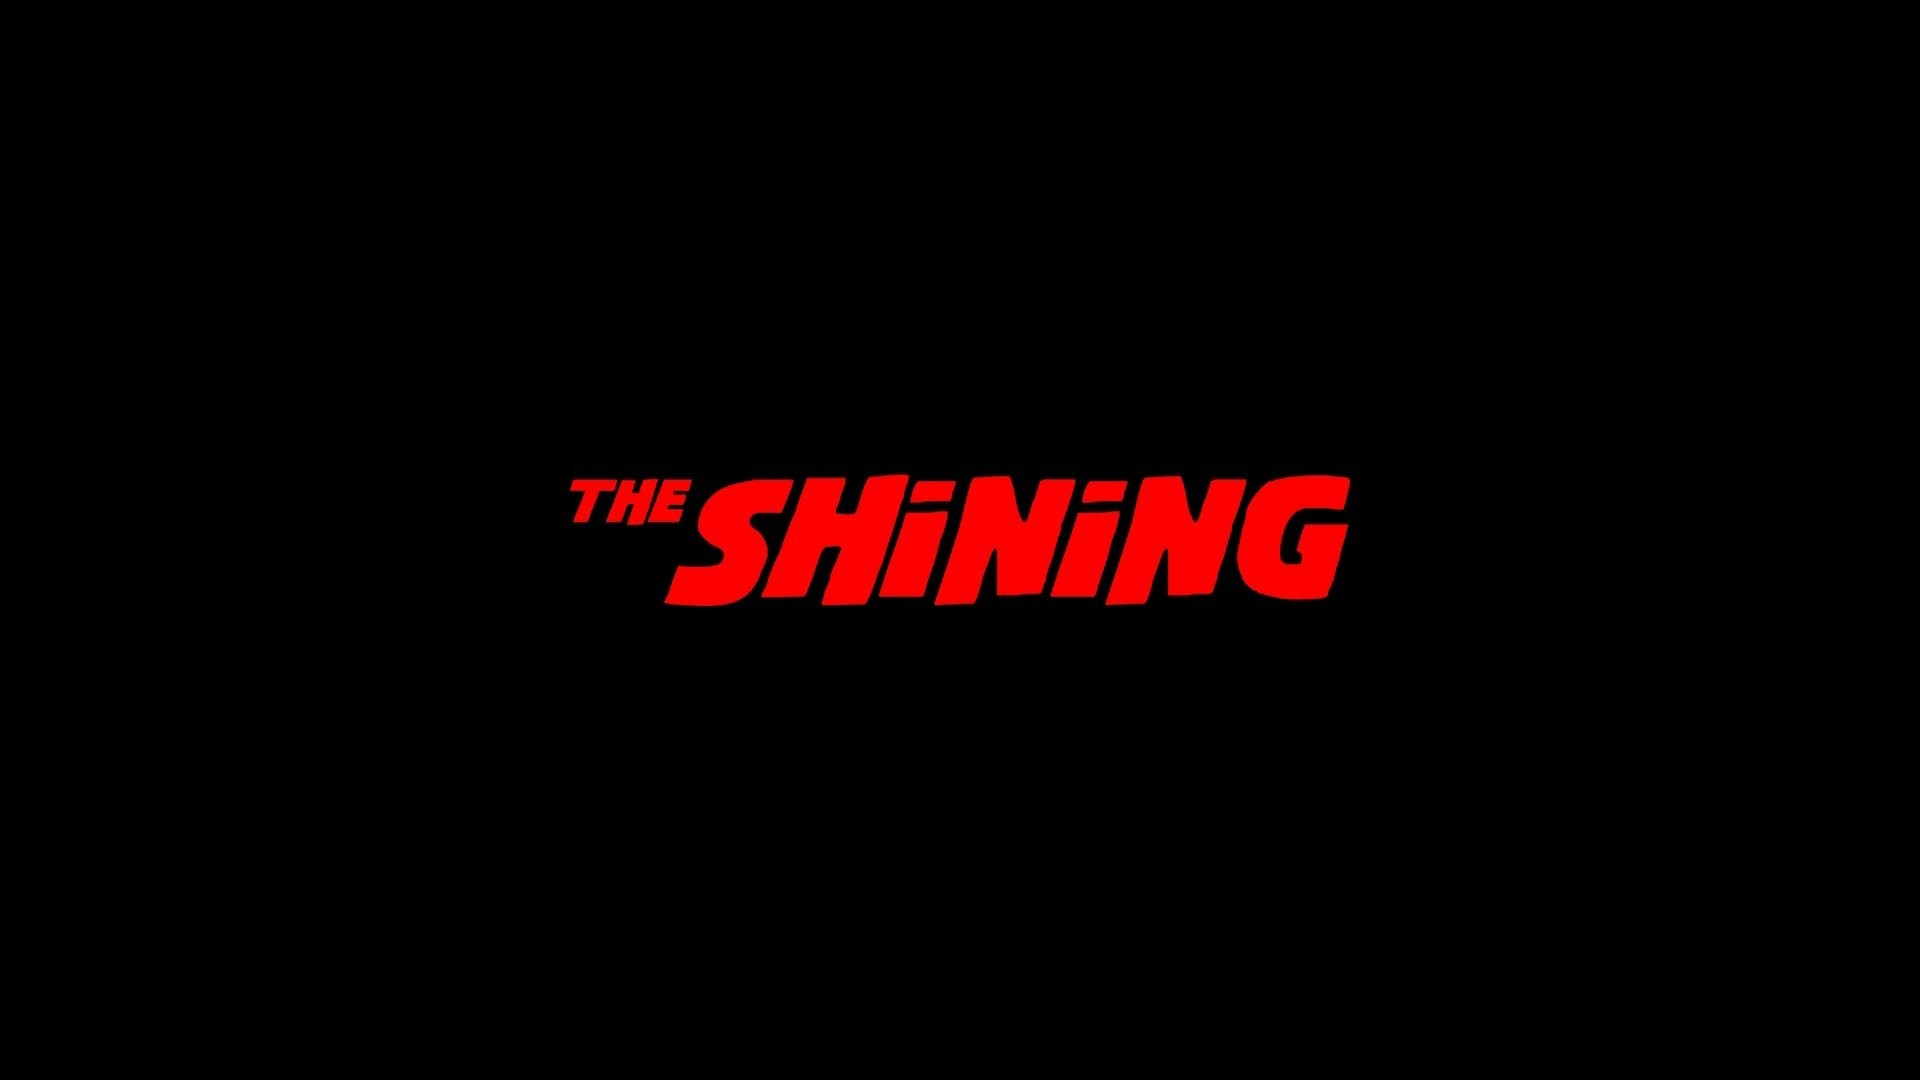 The Shining Wallpaper Background (57+ images)